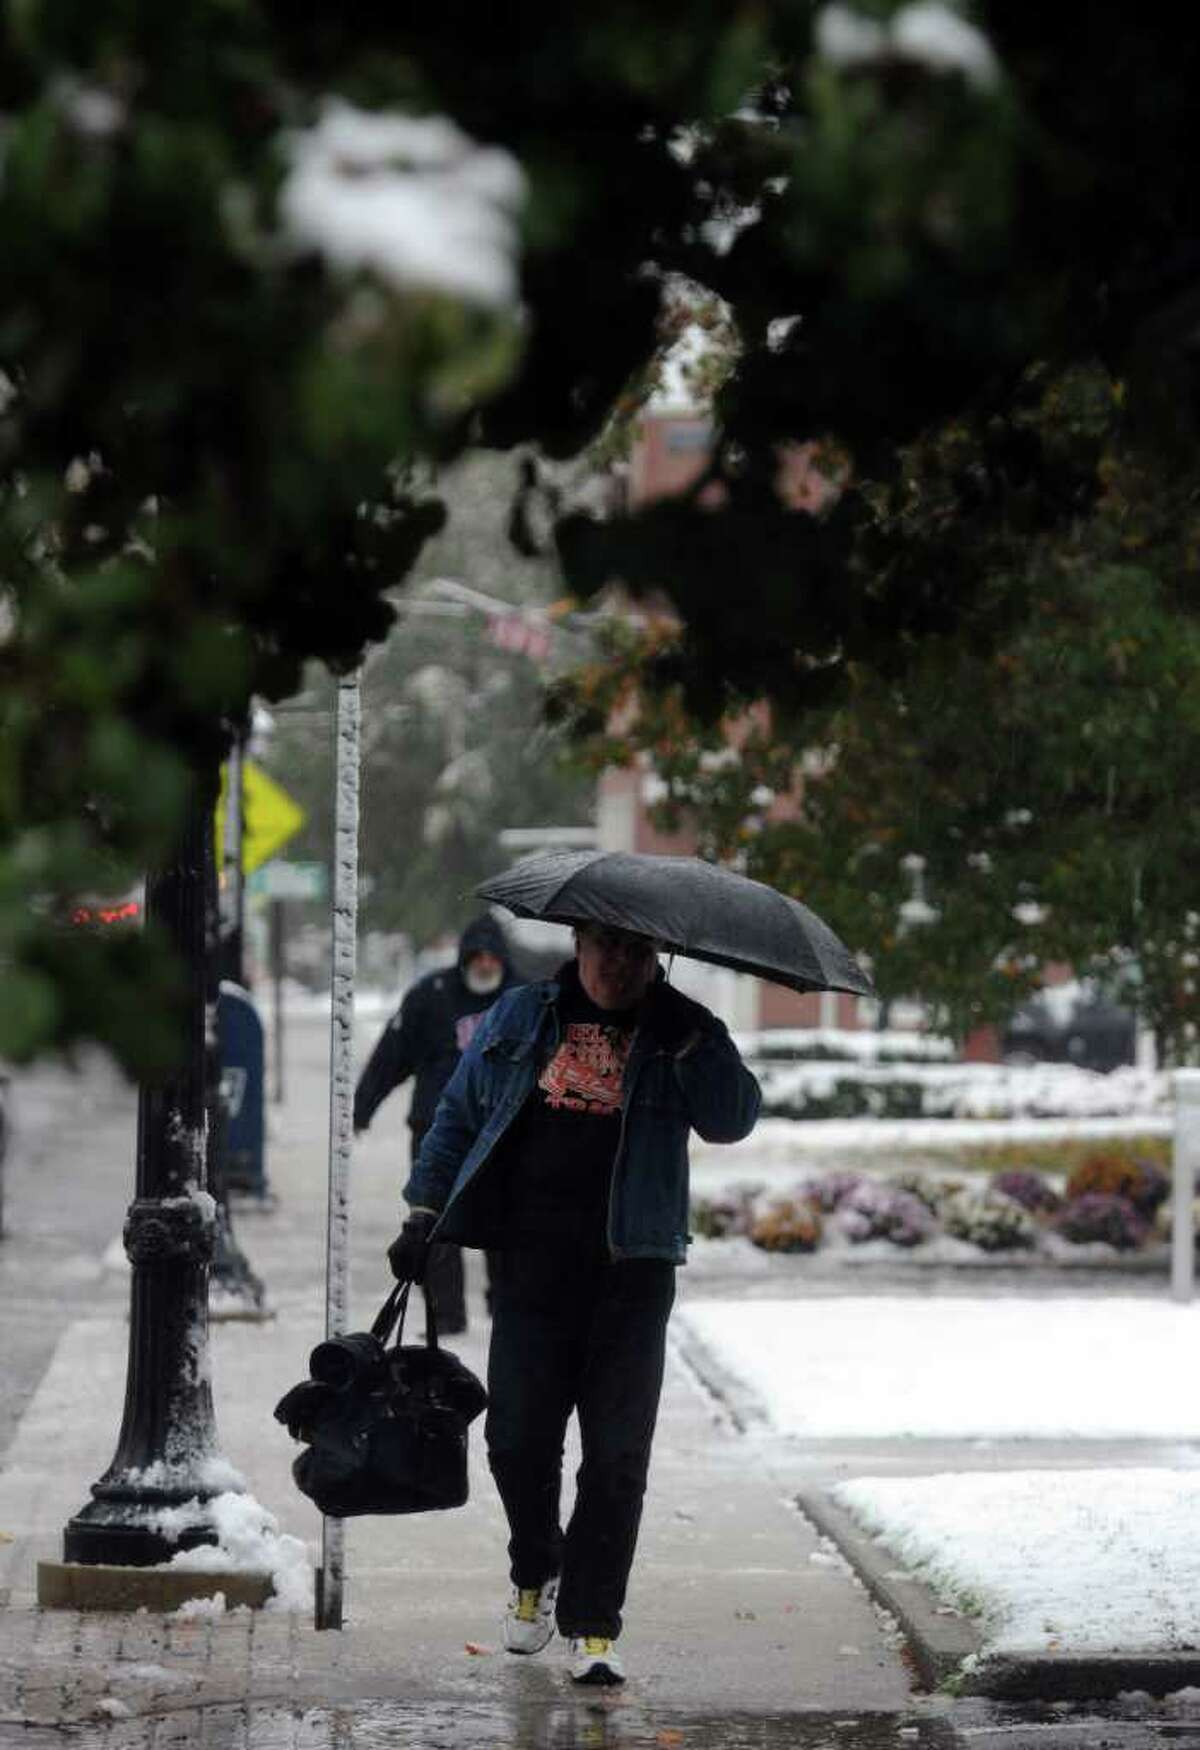 Scenes from Saturday's nor'easter as it goes through Milford, Conn. on October 29, 2011.